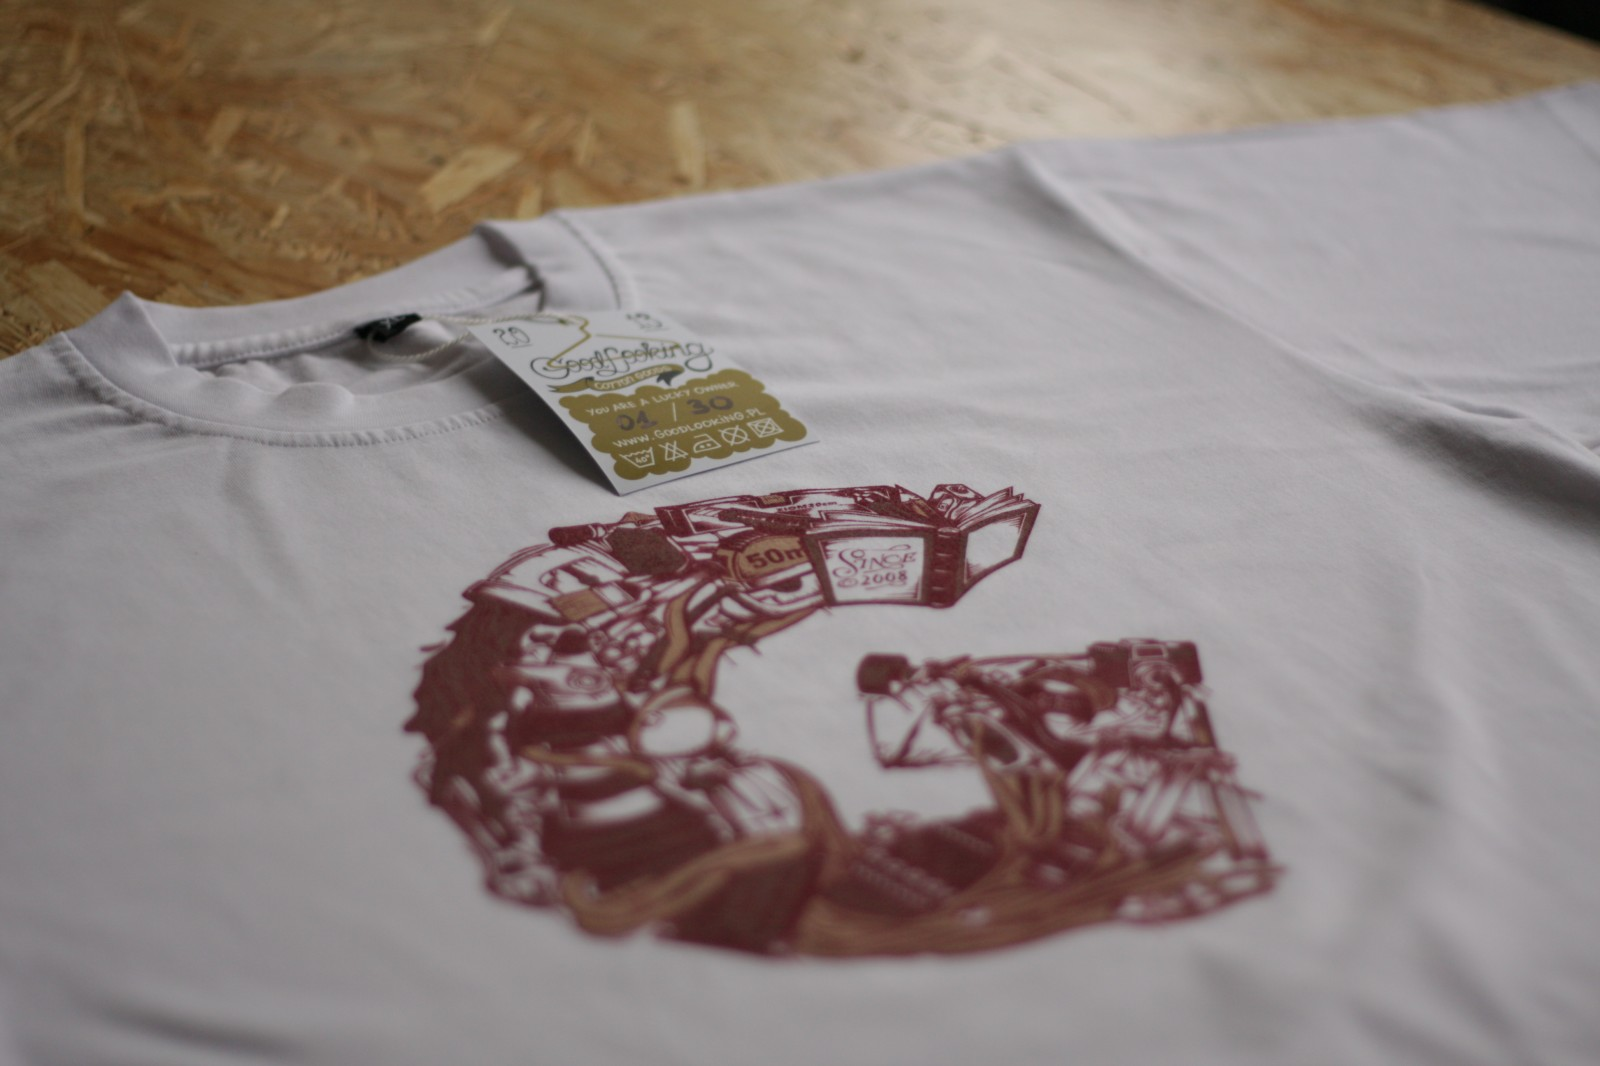 Warsaw Printed T-shirts with GLS company logo | Limited collection of GLS T-shirts | Backstage